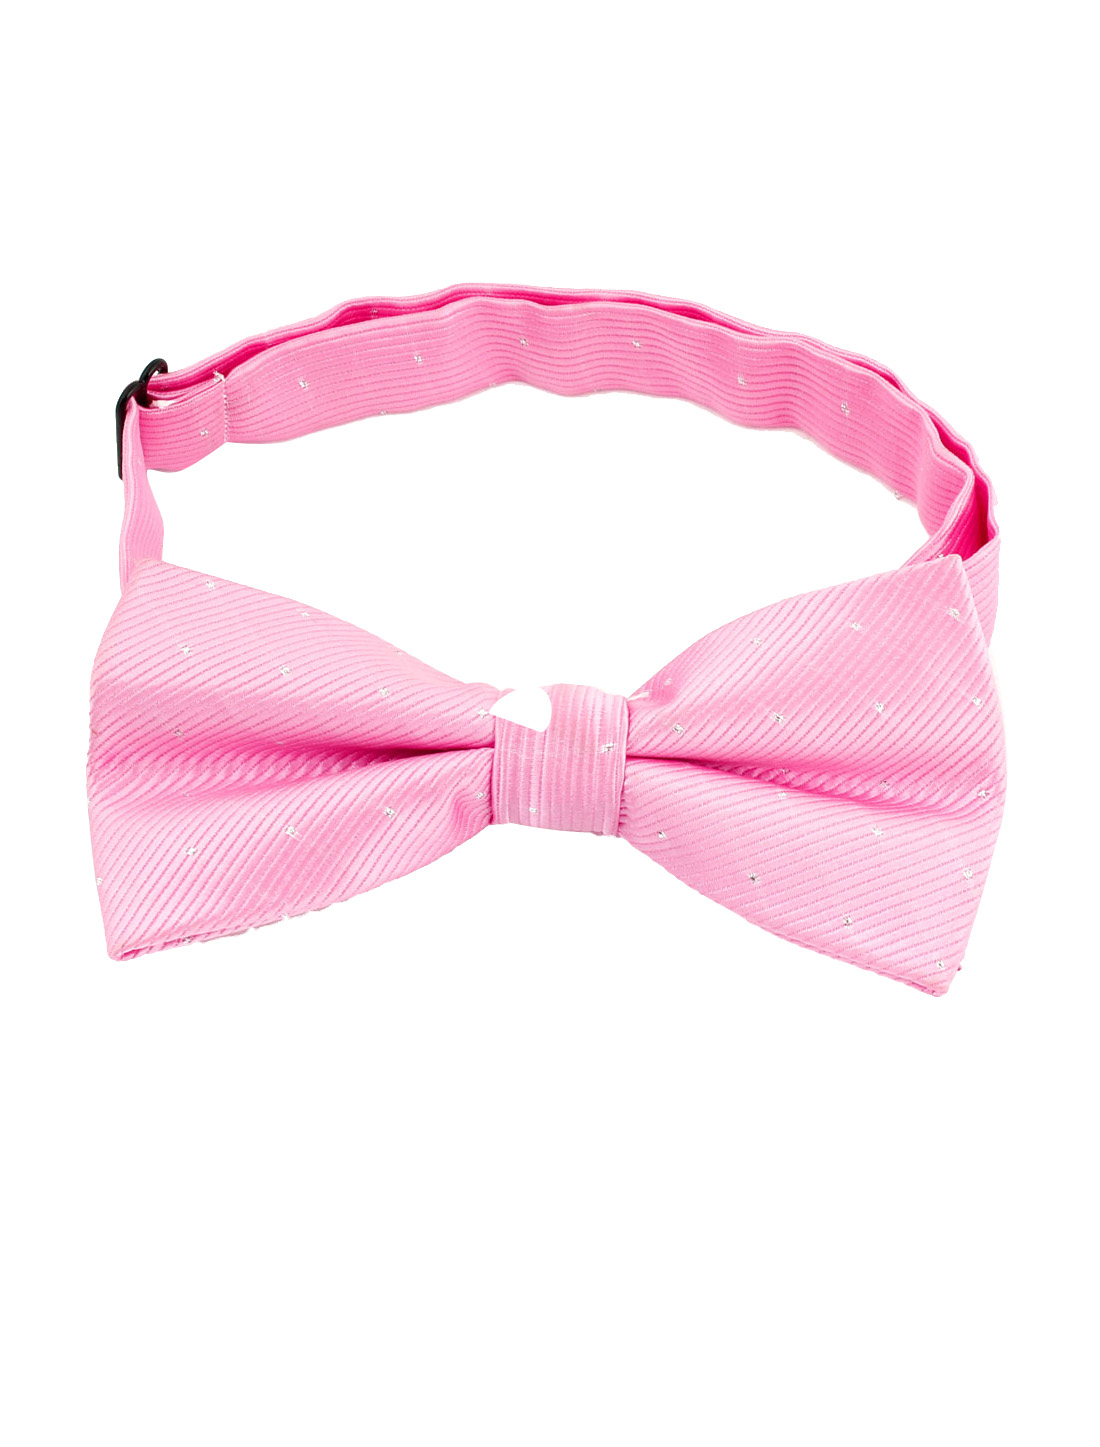 Dots Pattern Pre-tied Design Bow Tie Bowtie for Boys